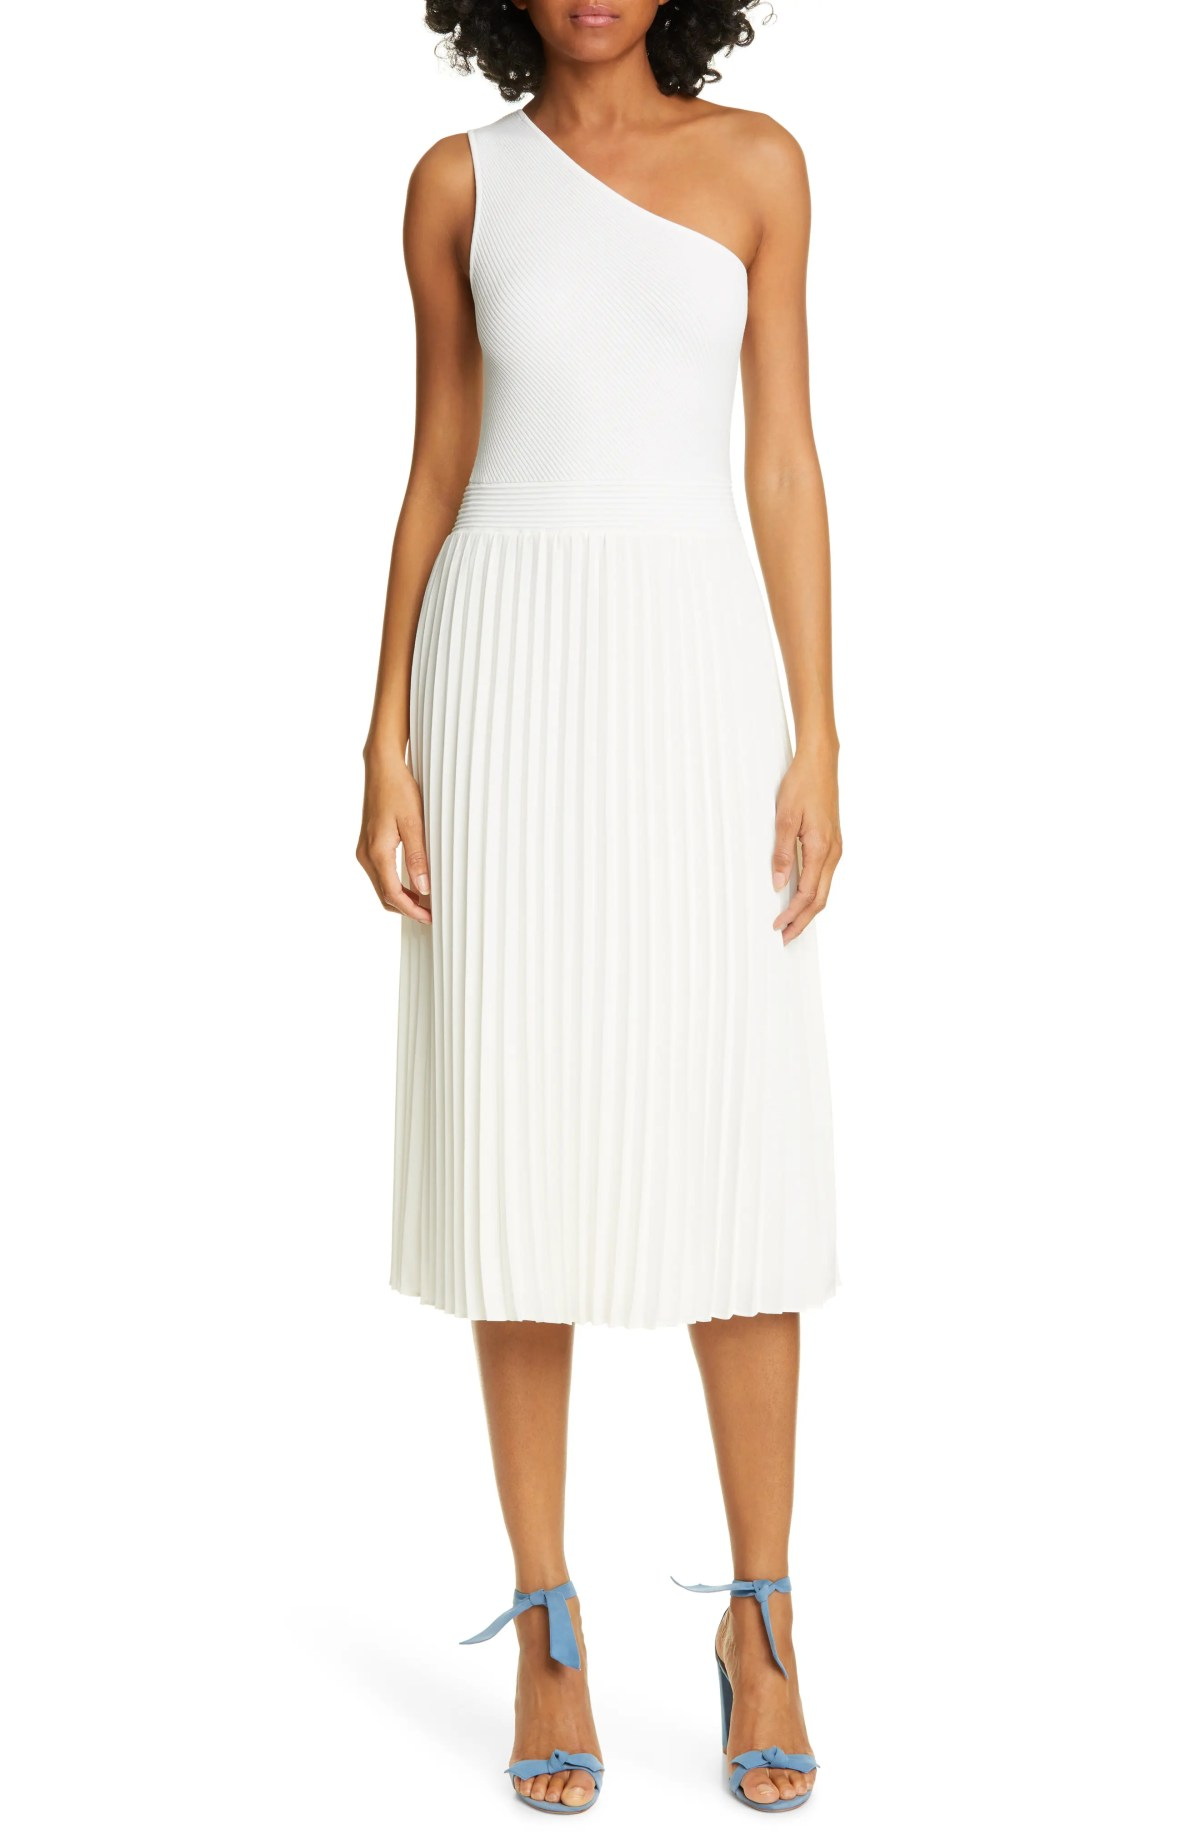 TED BAKER LONDON Miriom Mixed Media One-Shoulder Dress, Main, color, WHITE